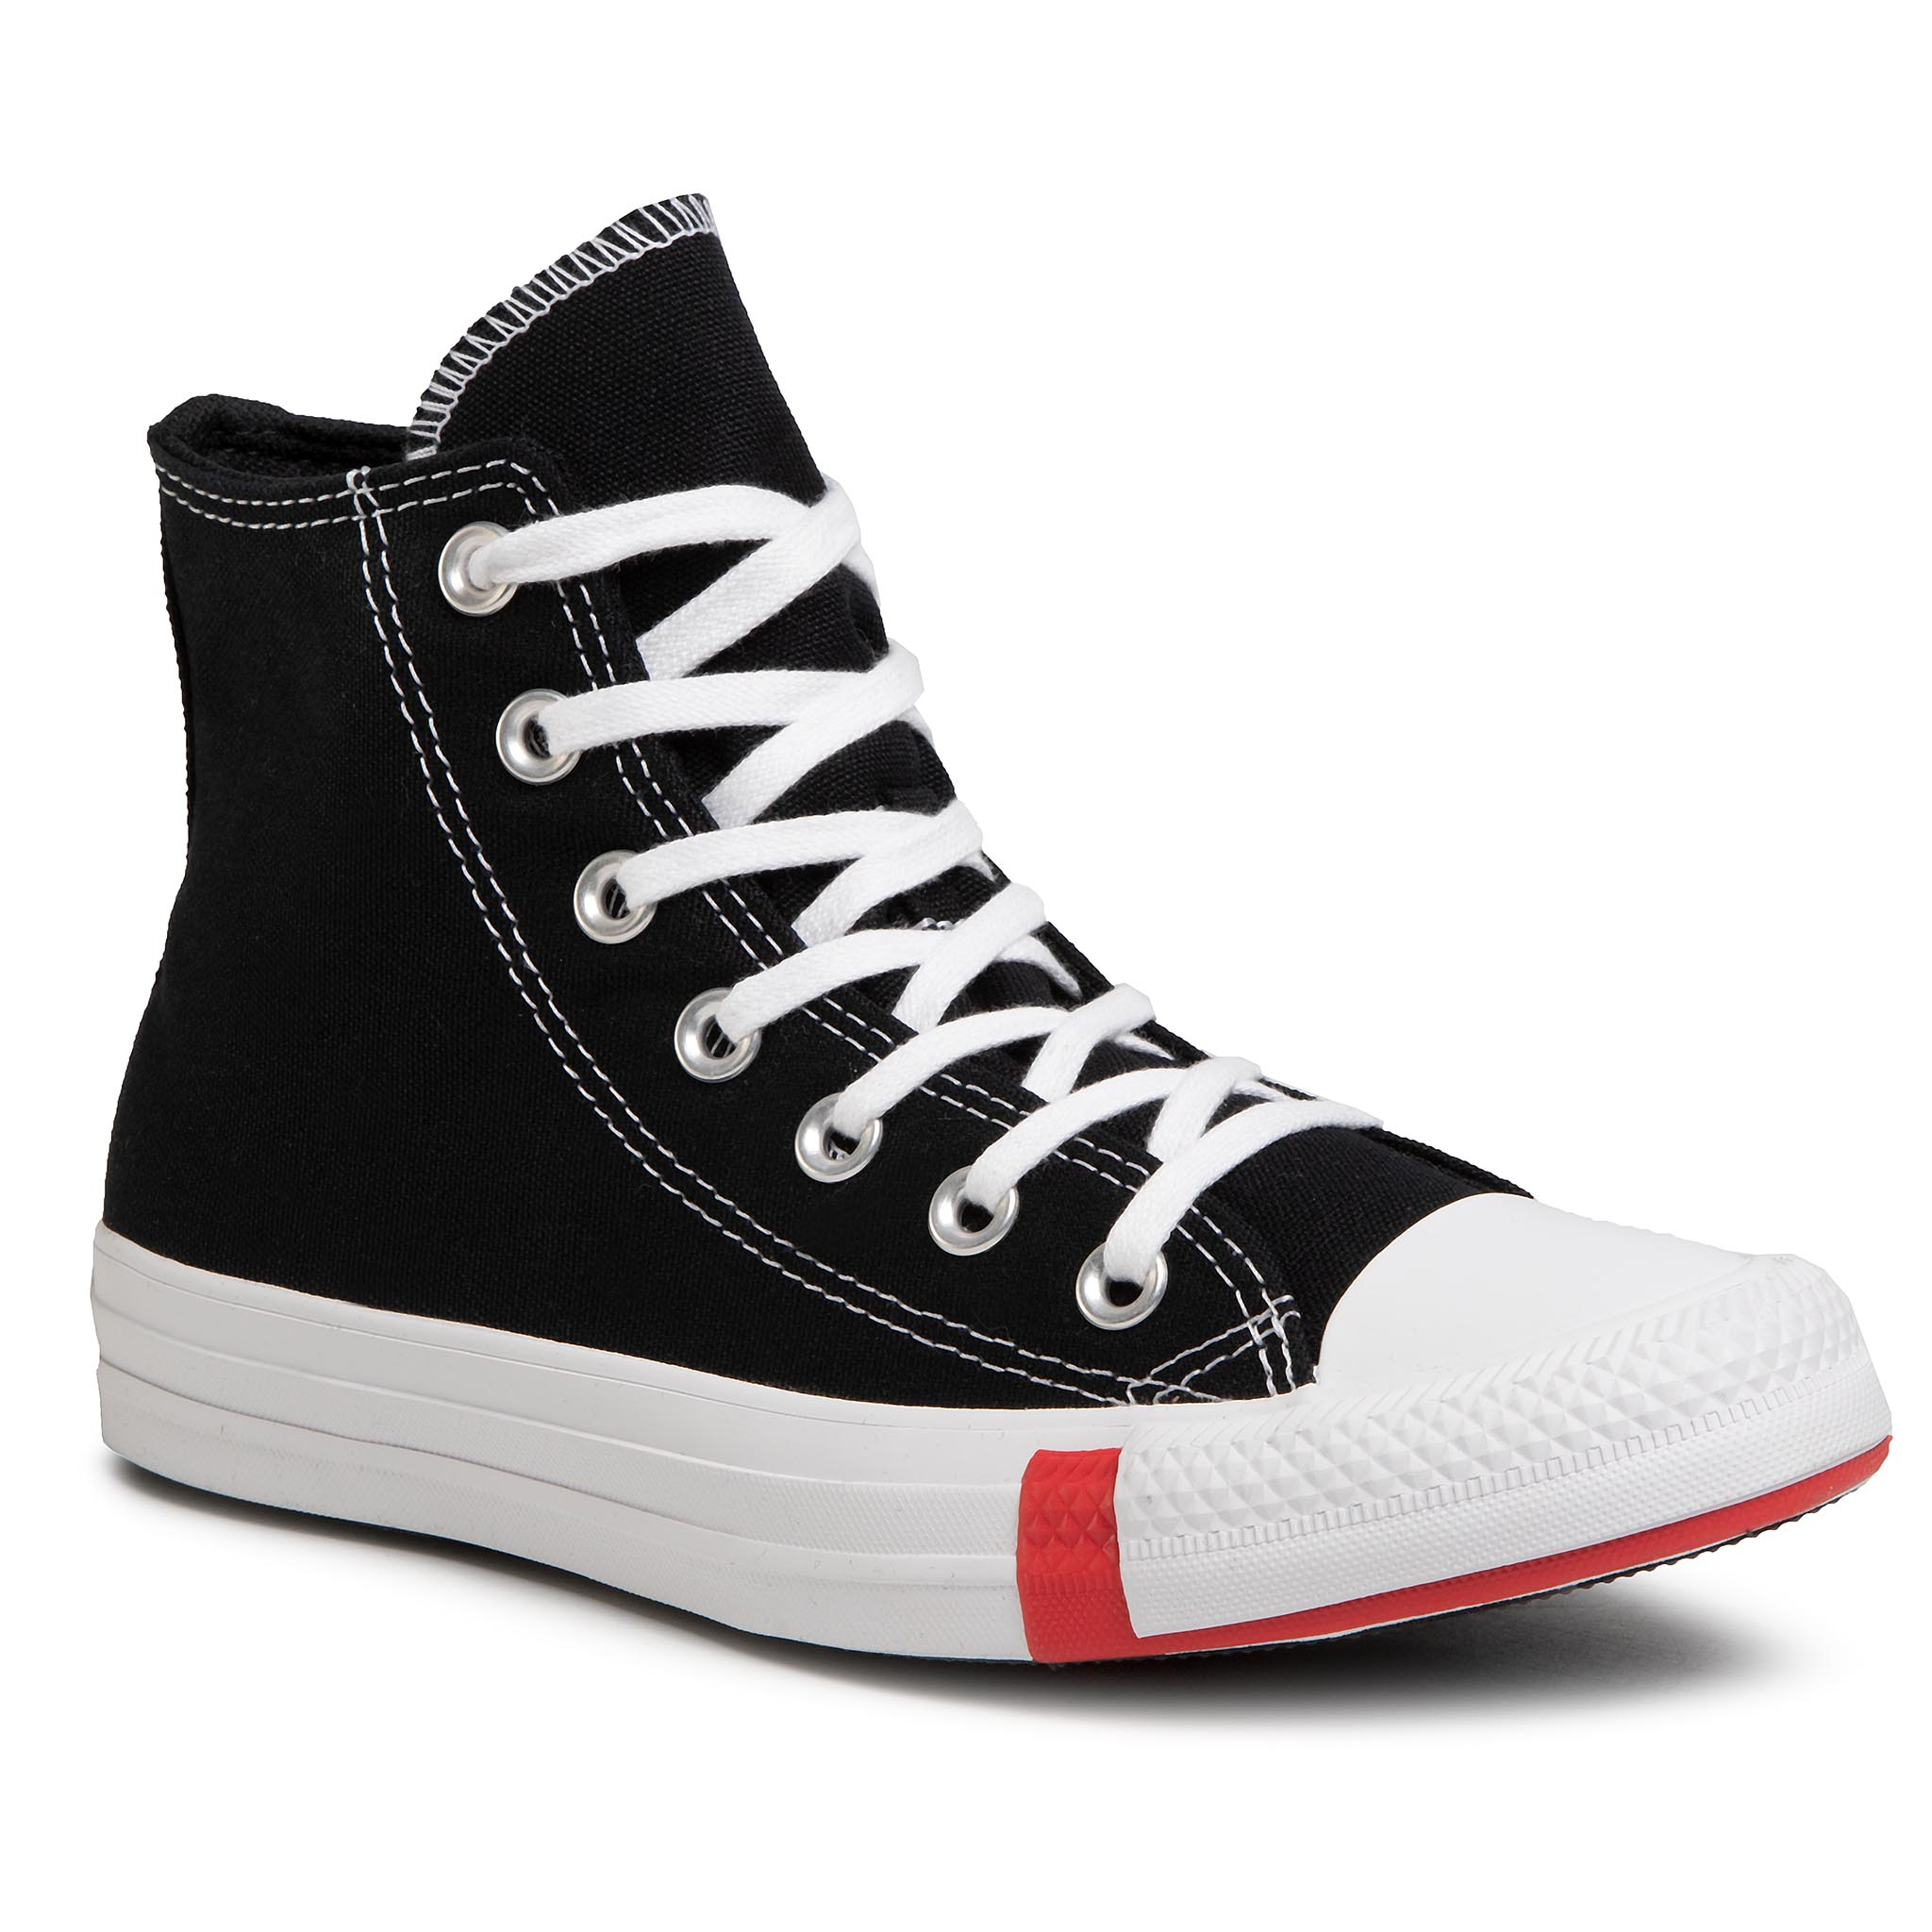 Teniși Converse - Ctas Hi 166734c Black/University R imagine epantofi.ro 2021